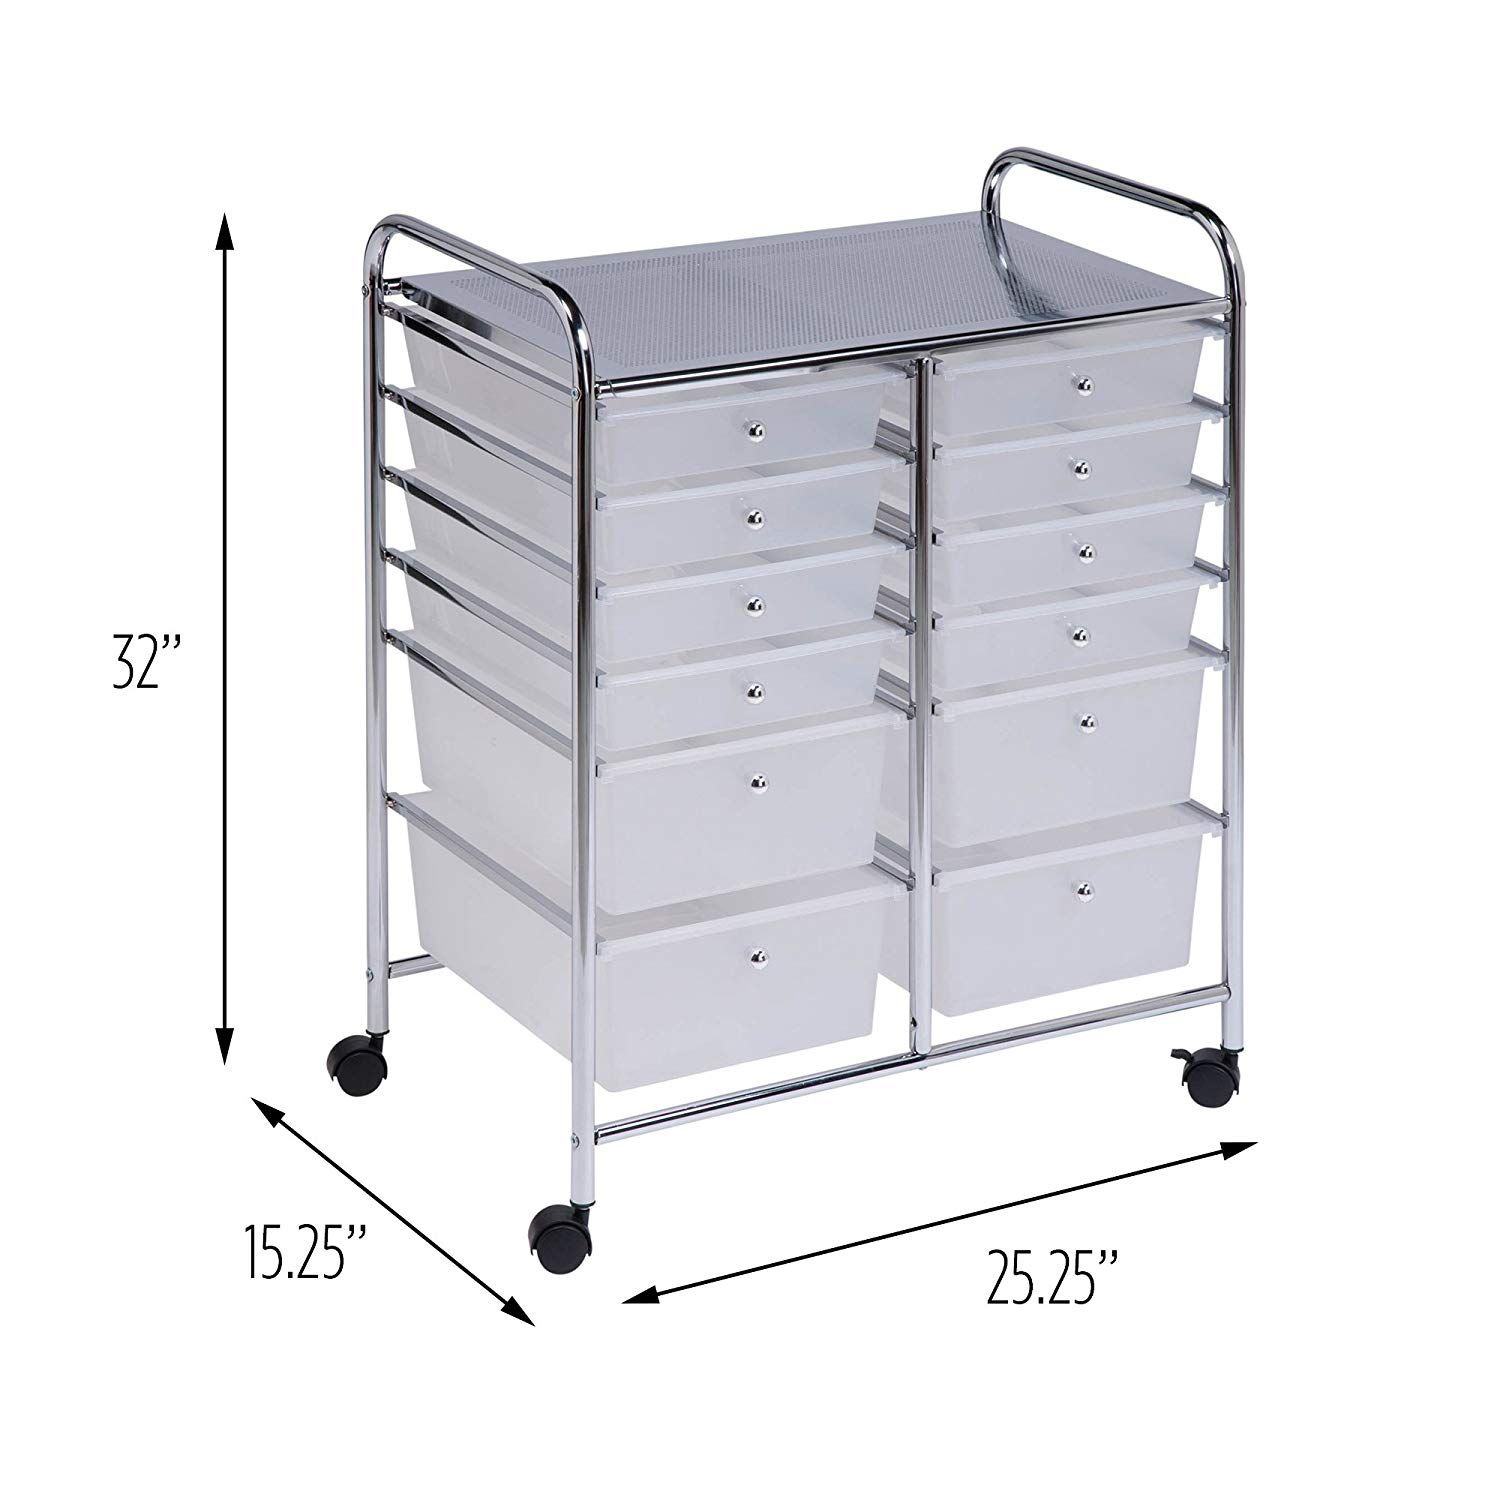 Pin By Abigail On Art Supply Storage Ideas In 2020 Rolling Storage Plastic Drawers Storage Cart